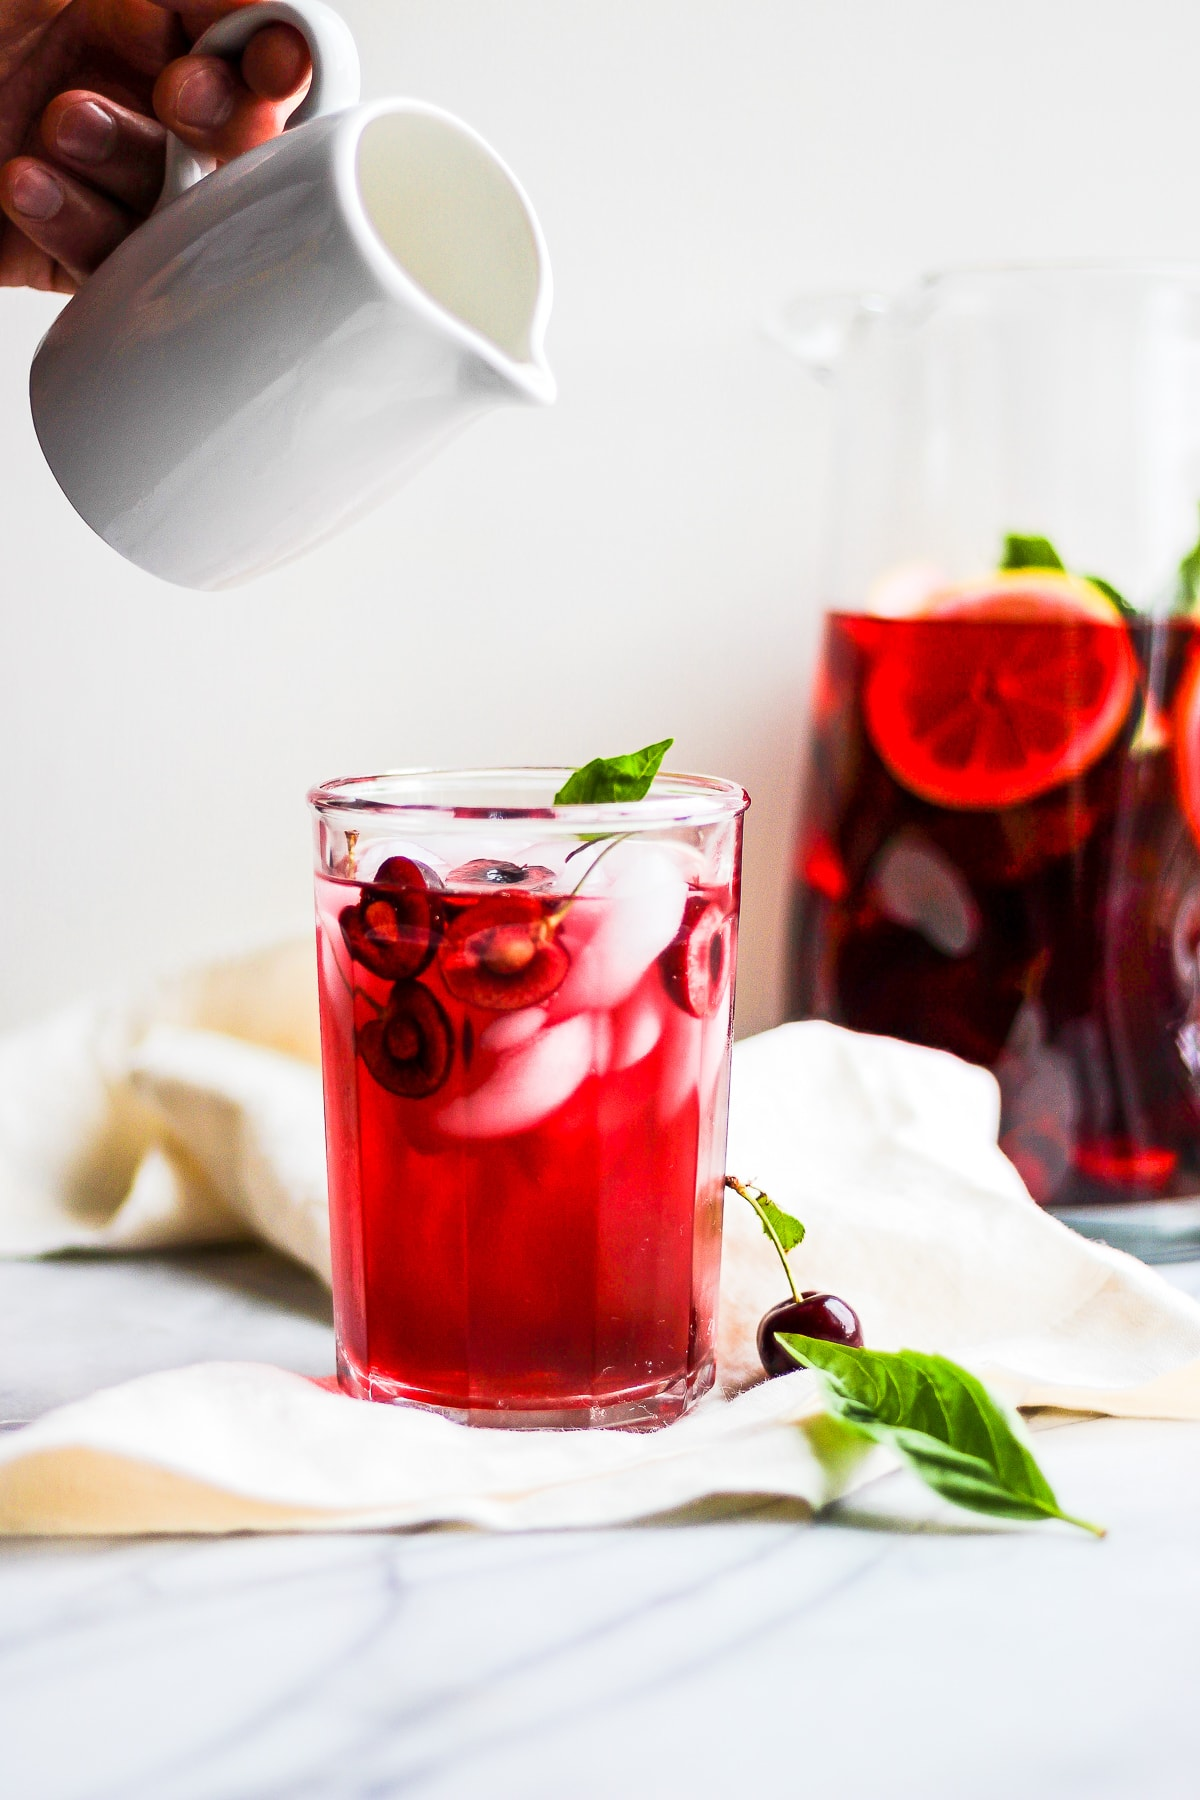 Glass of hibiscus tea on a marble board with someone pouring dairy-free creamer into it.  There is a pitcher of more tea in the background.